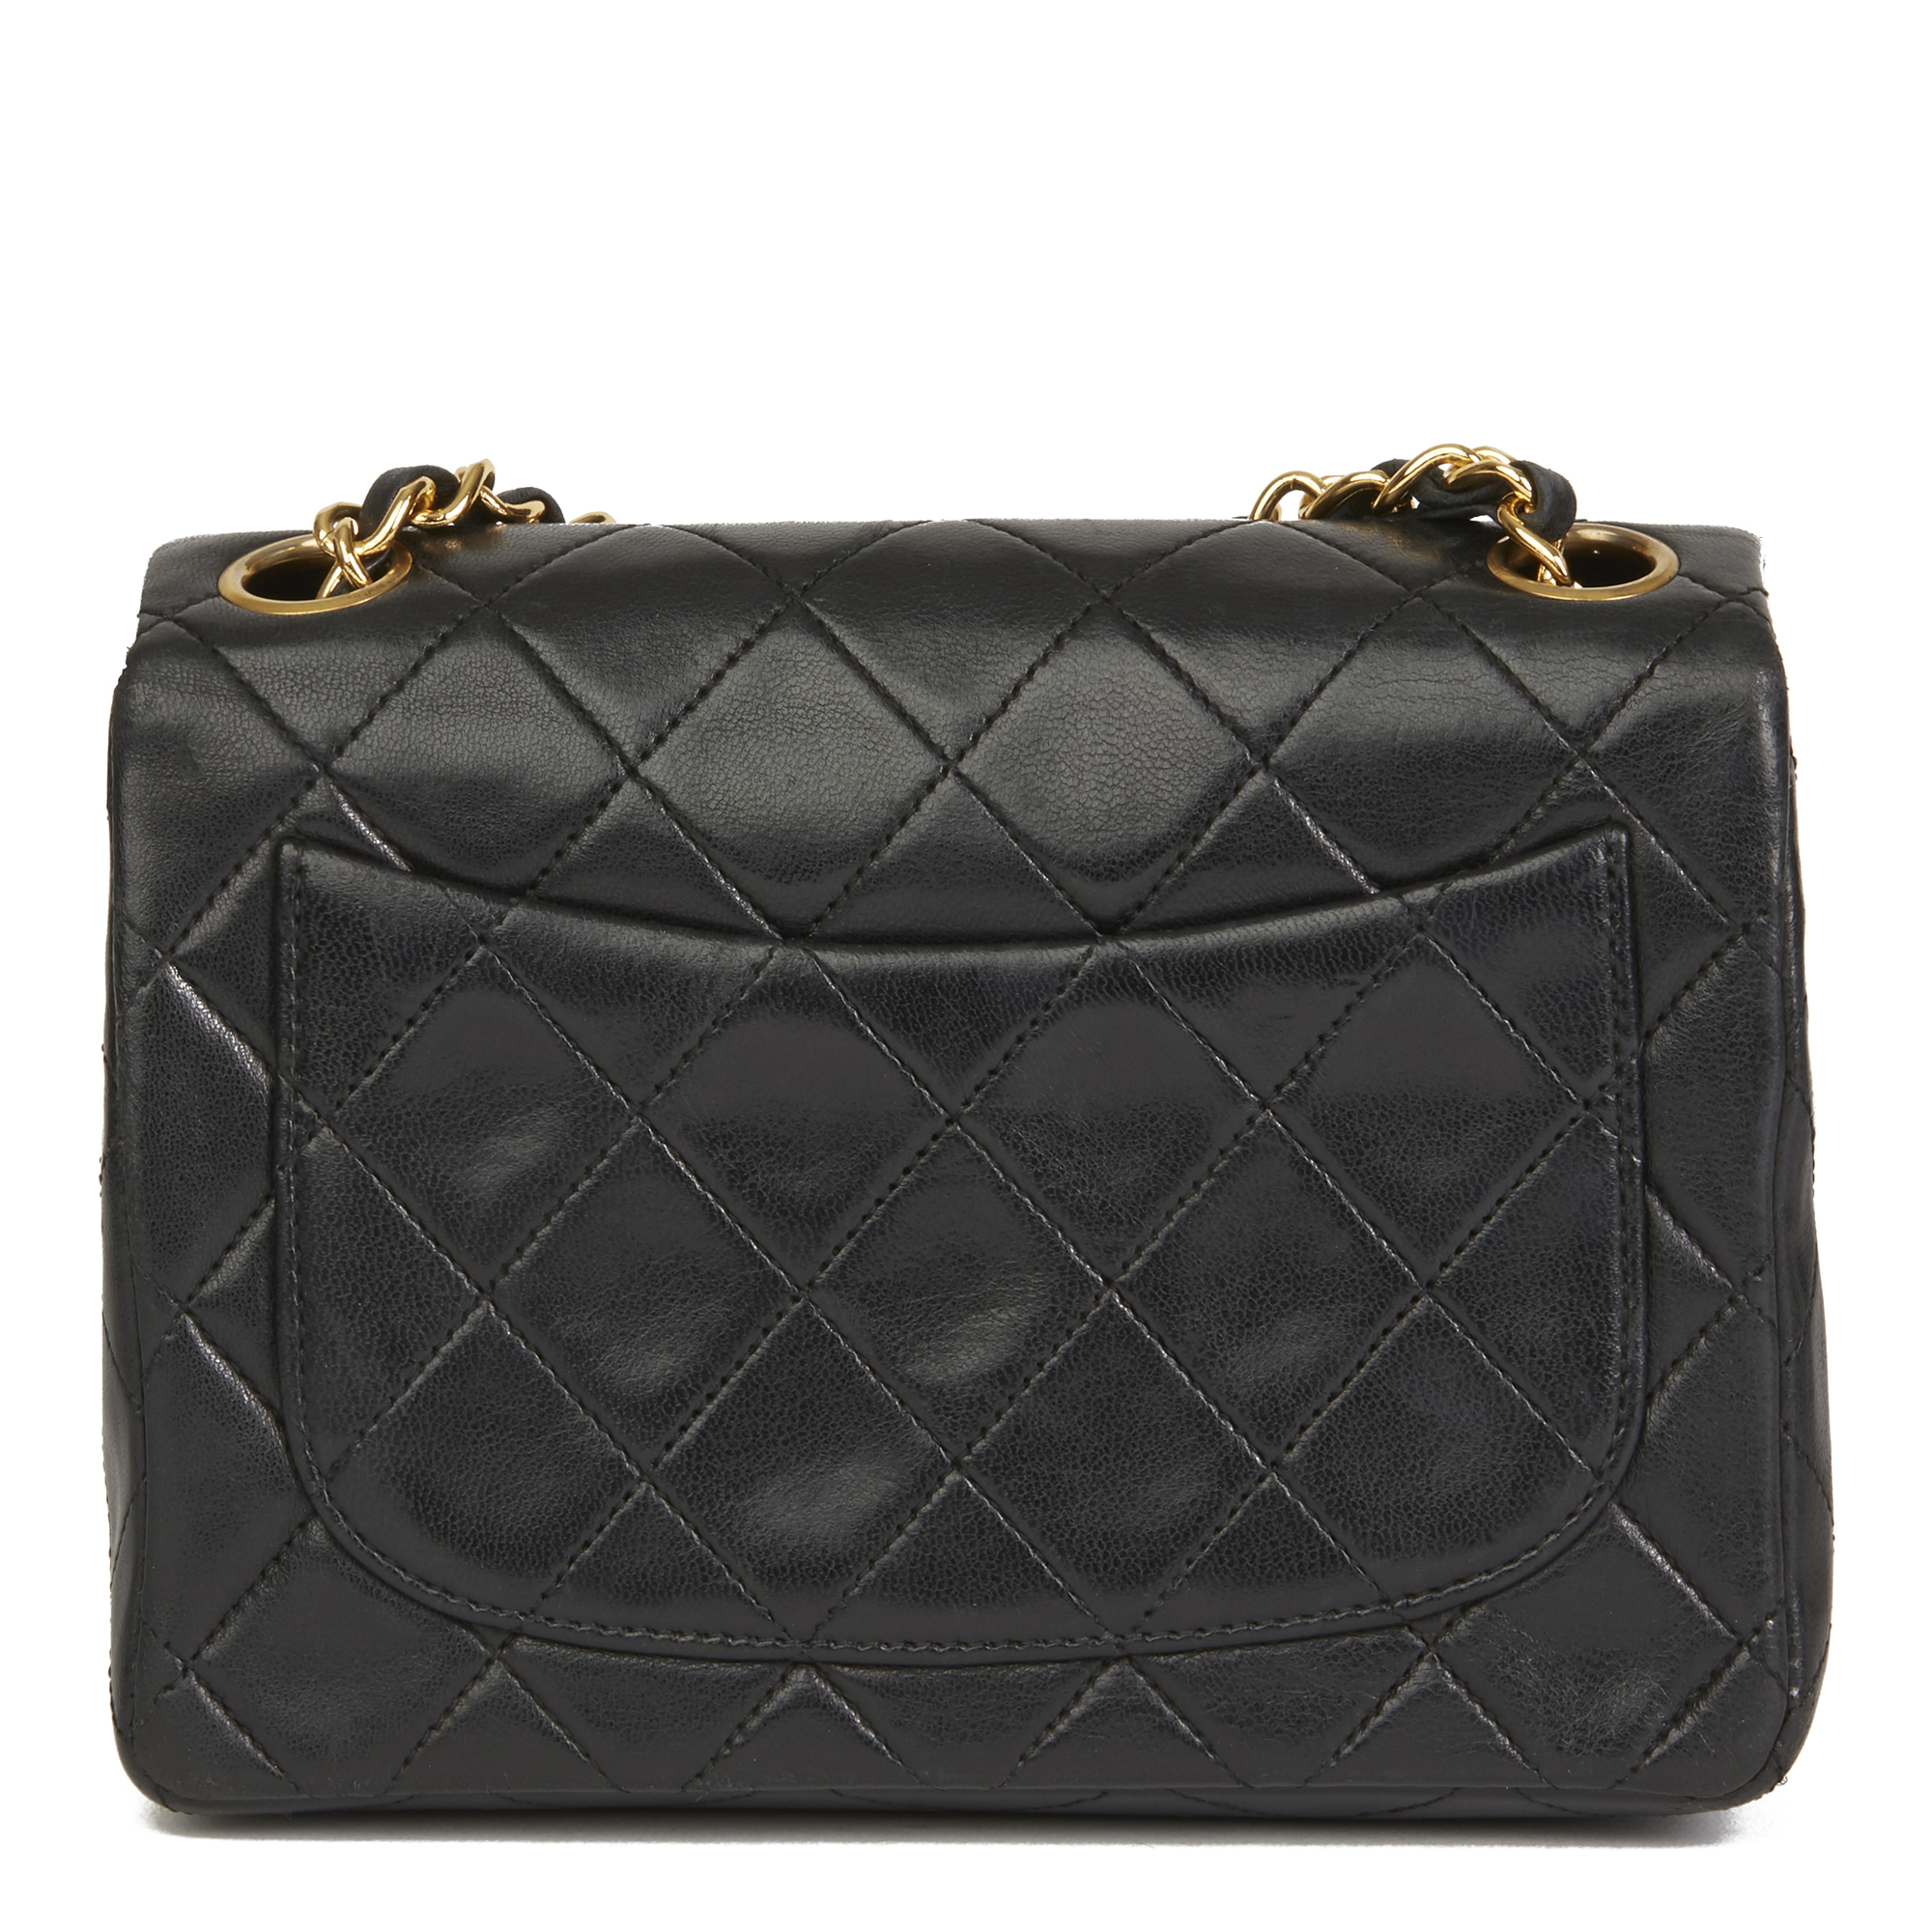 ddef07899aee70 Details about CHANEL BLACK QUILTED LAMBSKIN VINTAGE MINI FLAP BAG HB2634